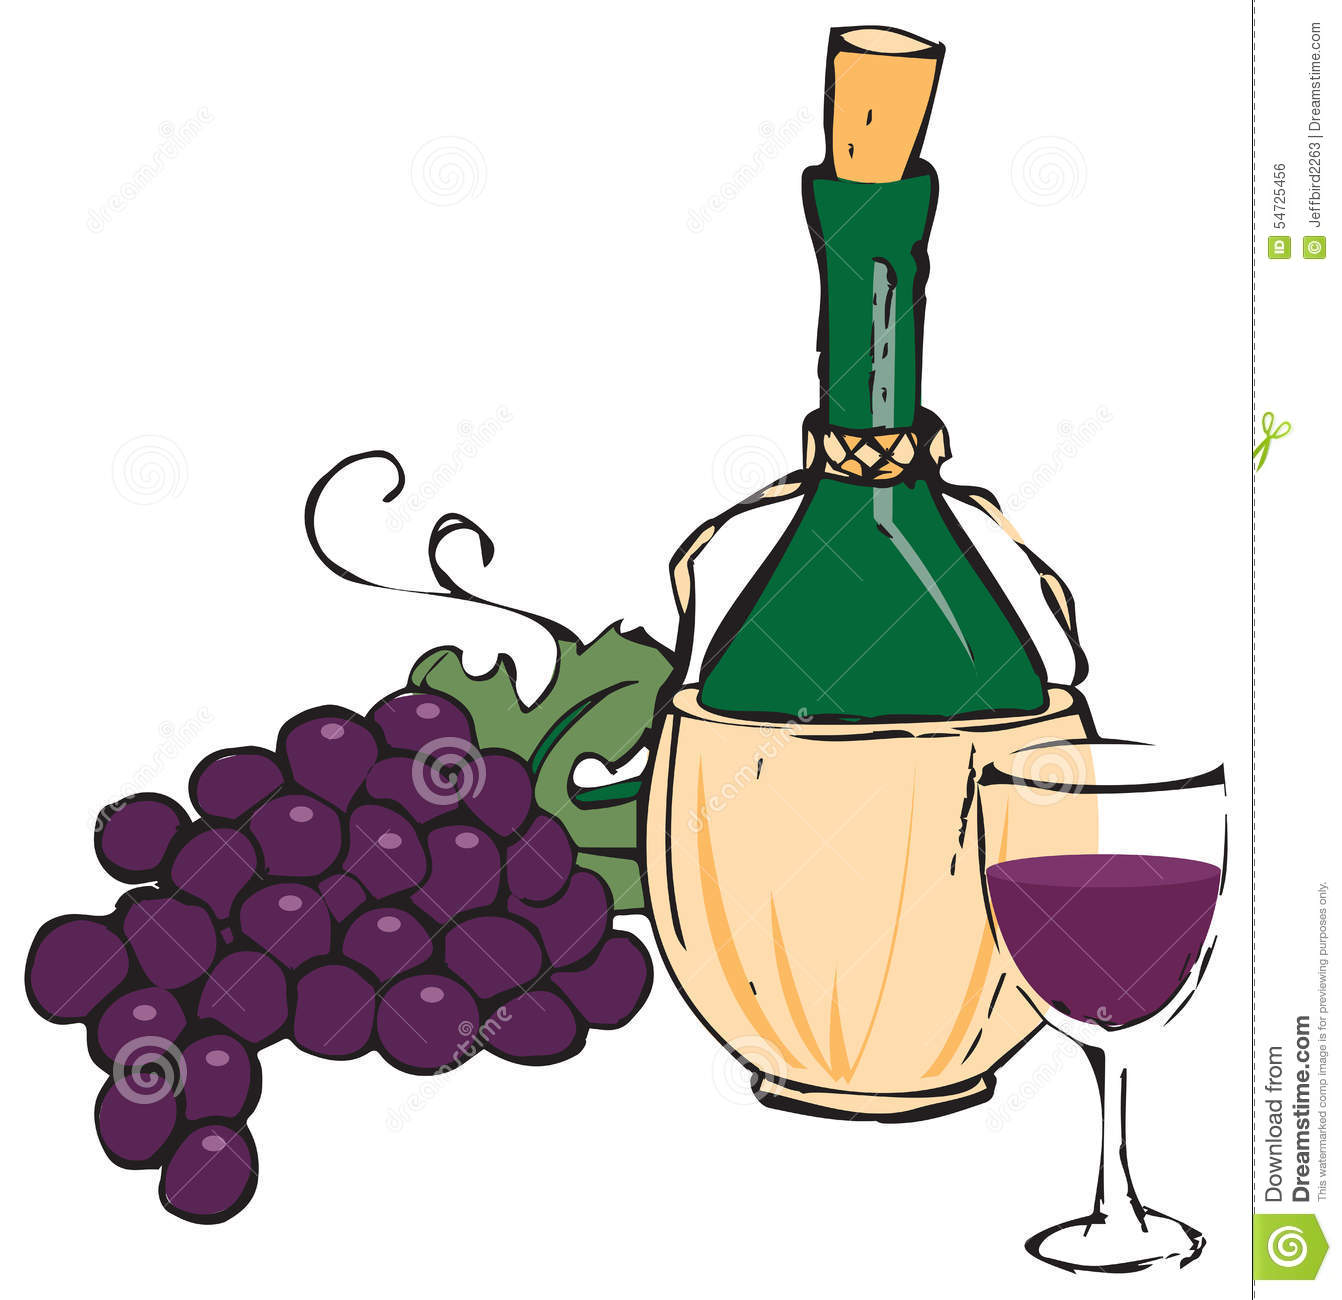 Chianti Stock Illustrations.